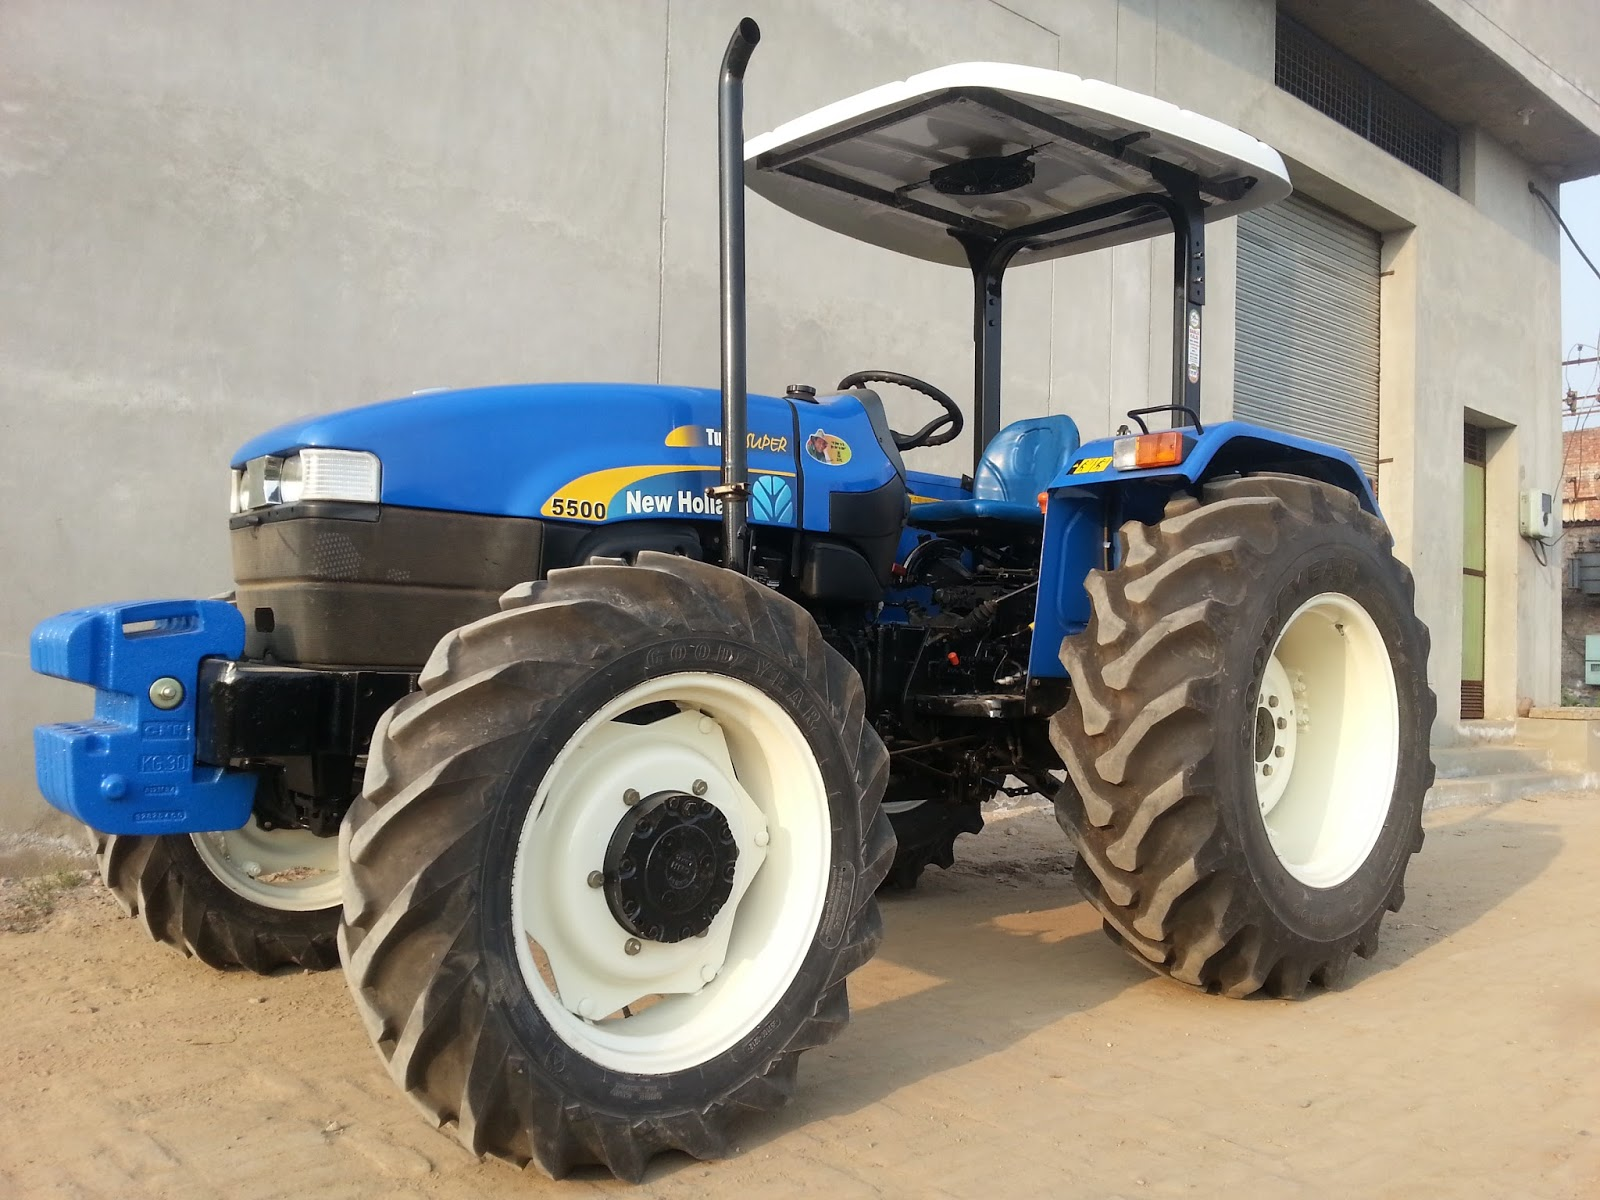 New Holland Tractor Roofs : Bablu kalsi engg works all tractor accessories new